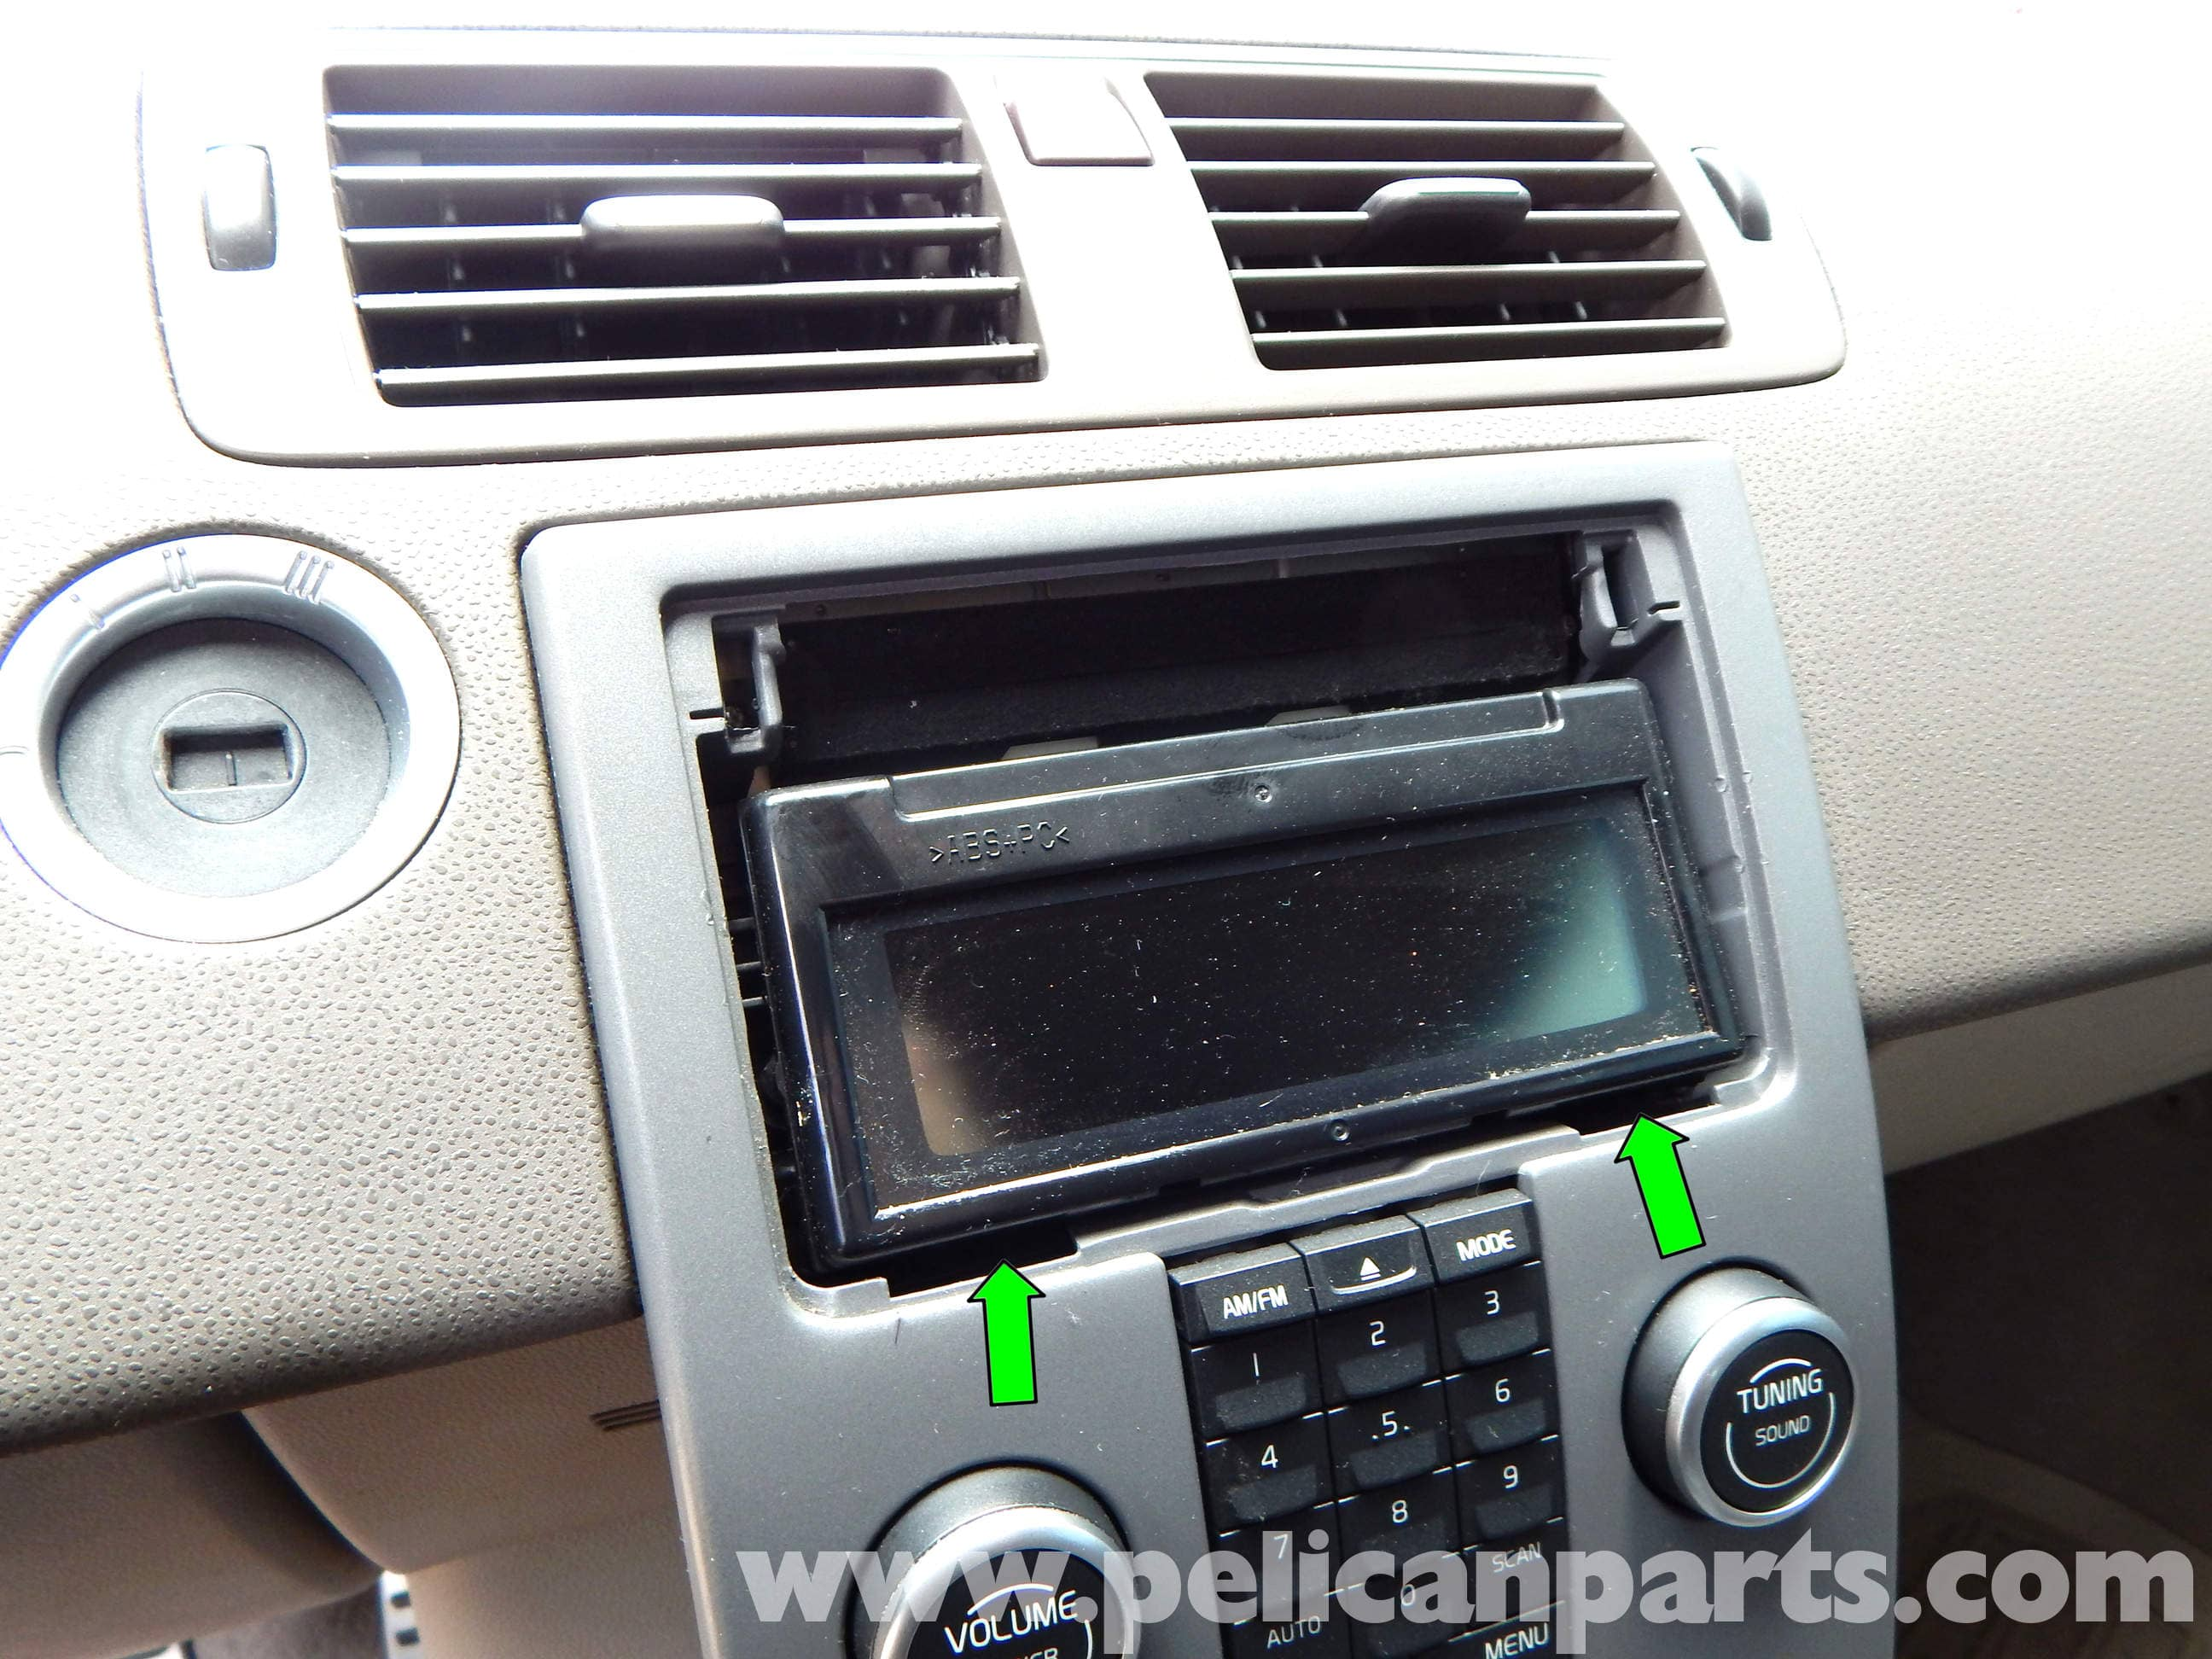 Volvo C30 Waterfall Console Removal (2007-2013) - Pelican Parts DIY Maintenance Article